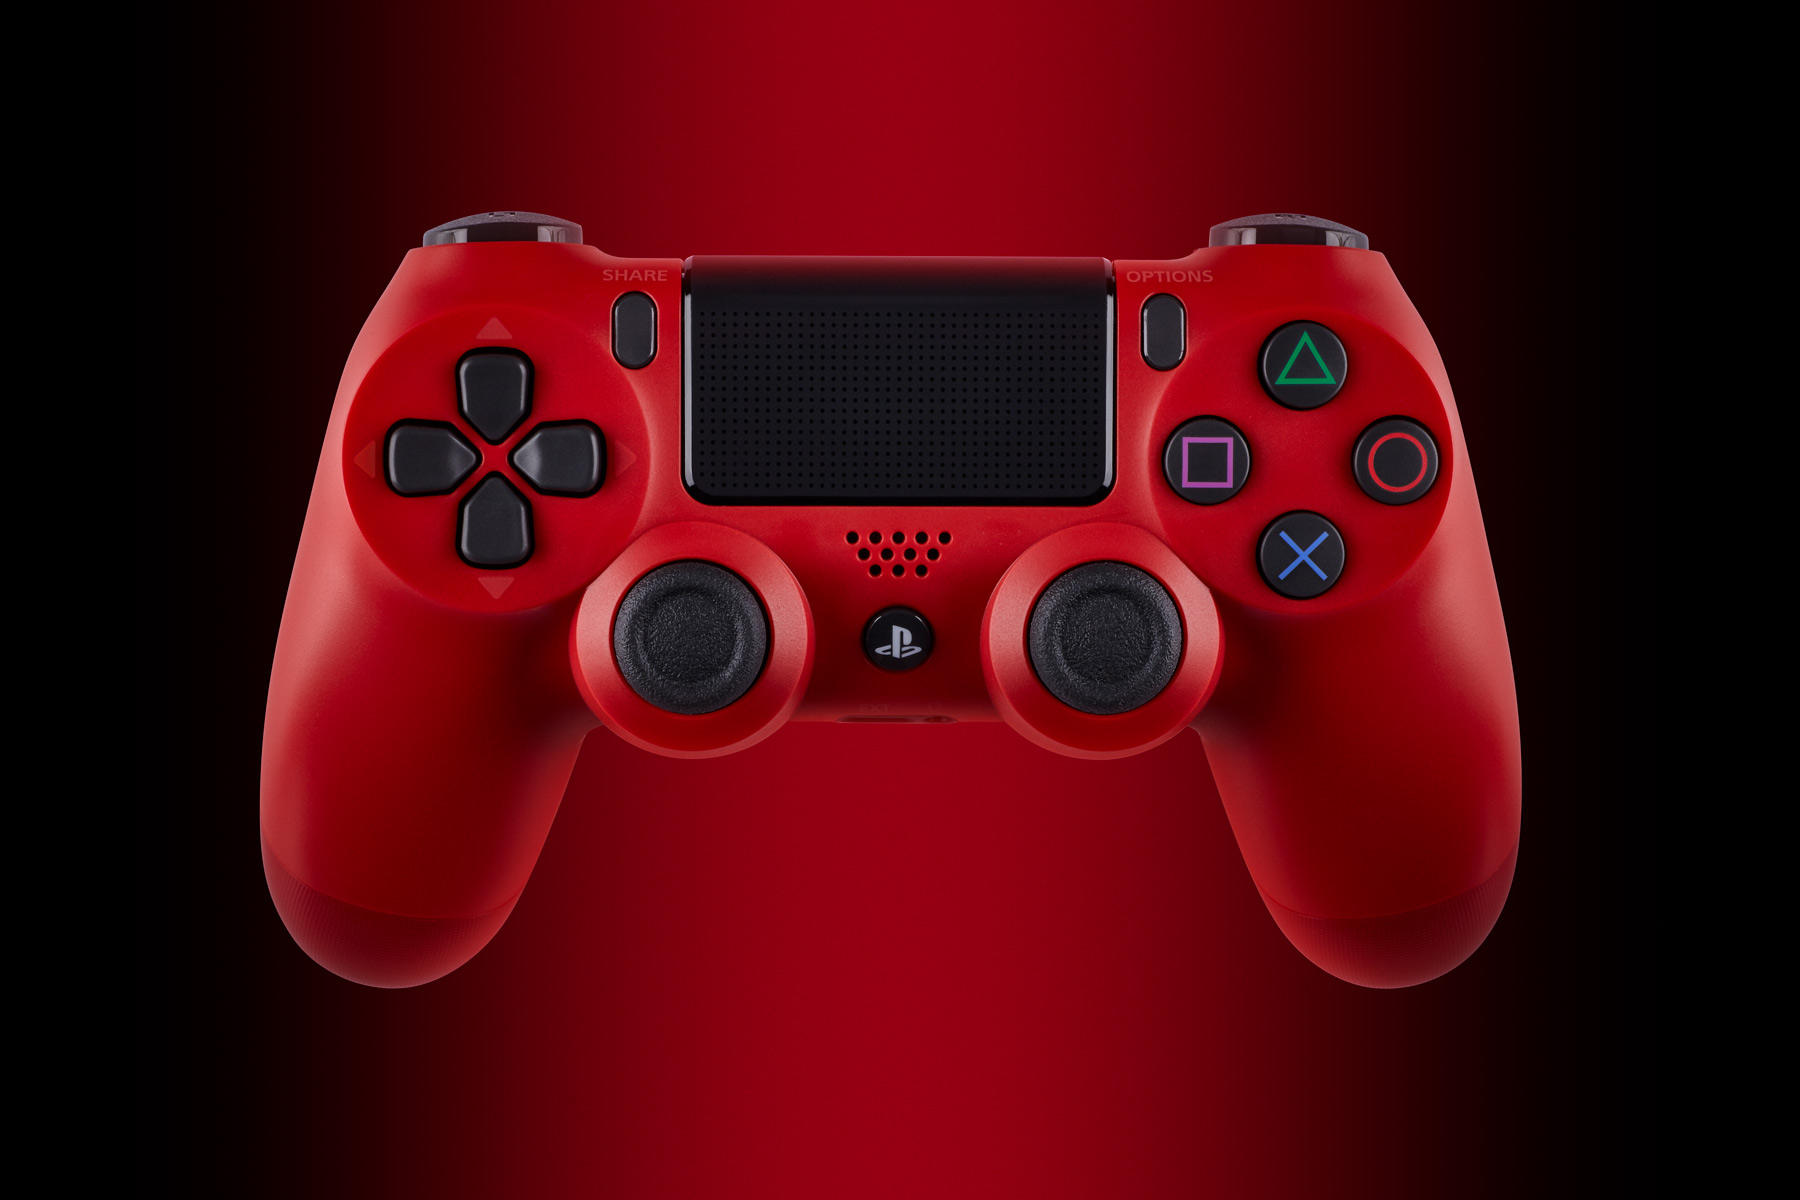 PRDCT_PS4ControllerRed-02-1800px.jpg